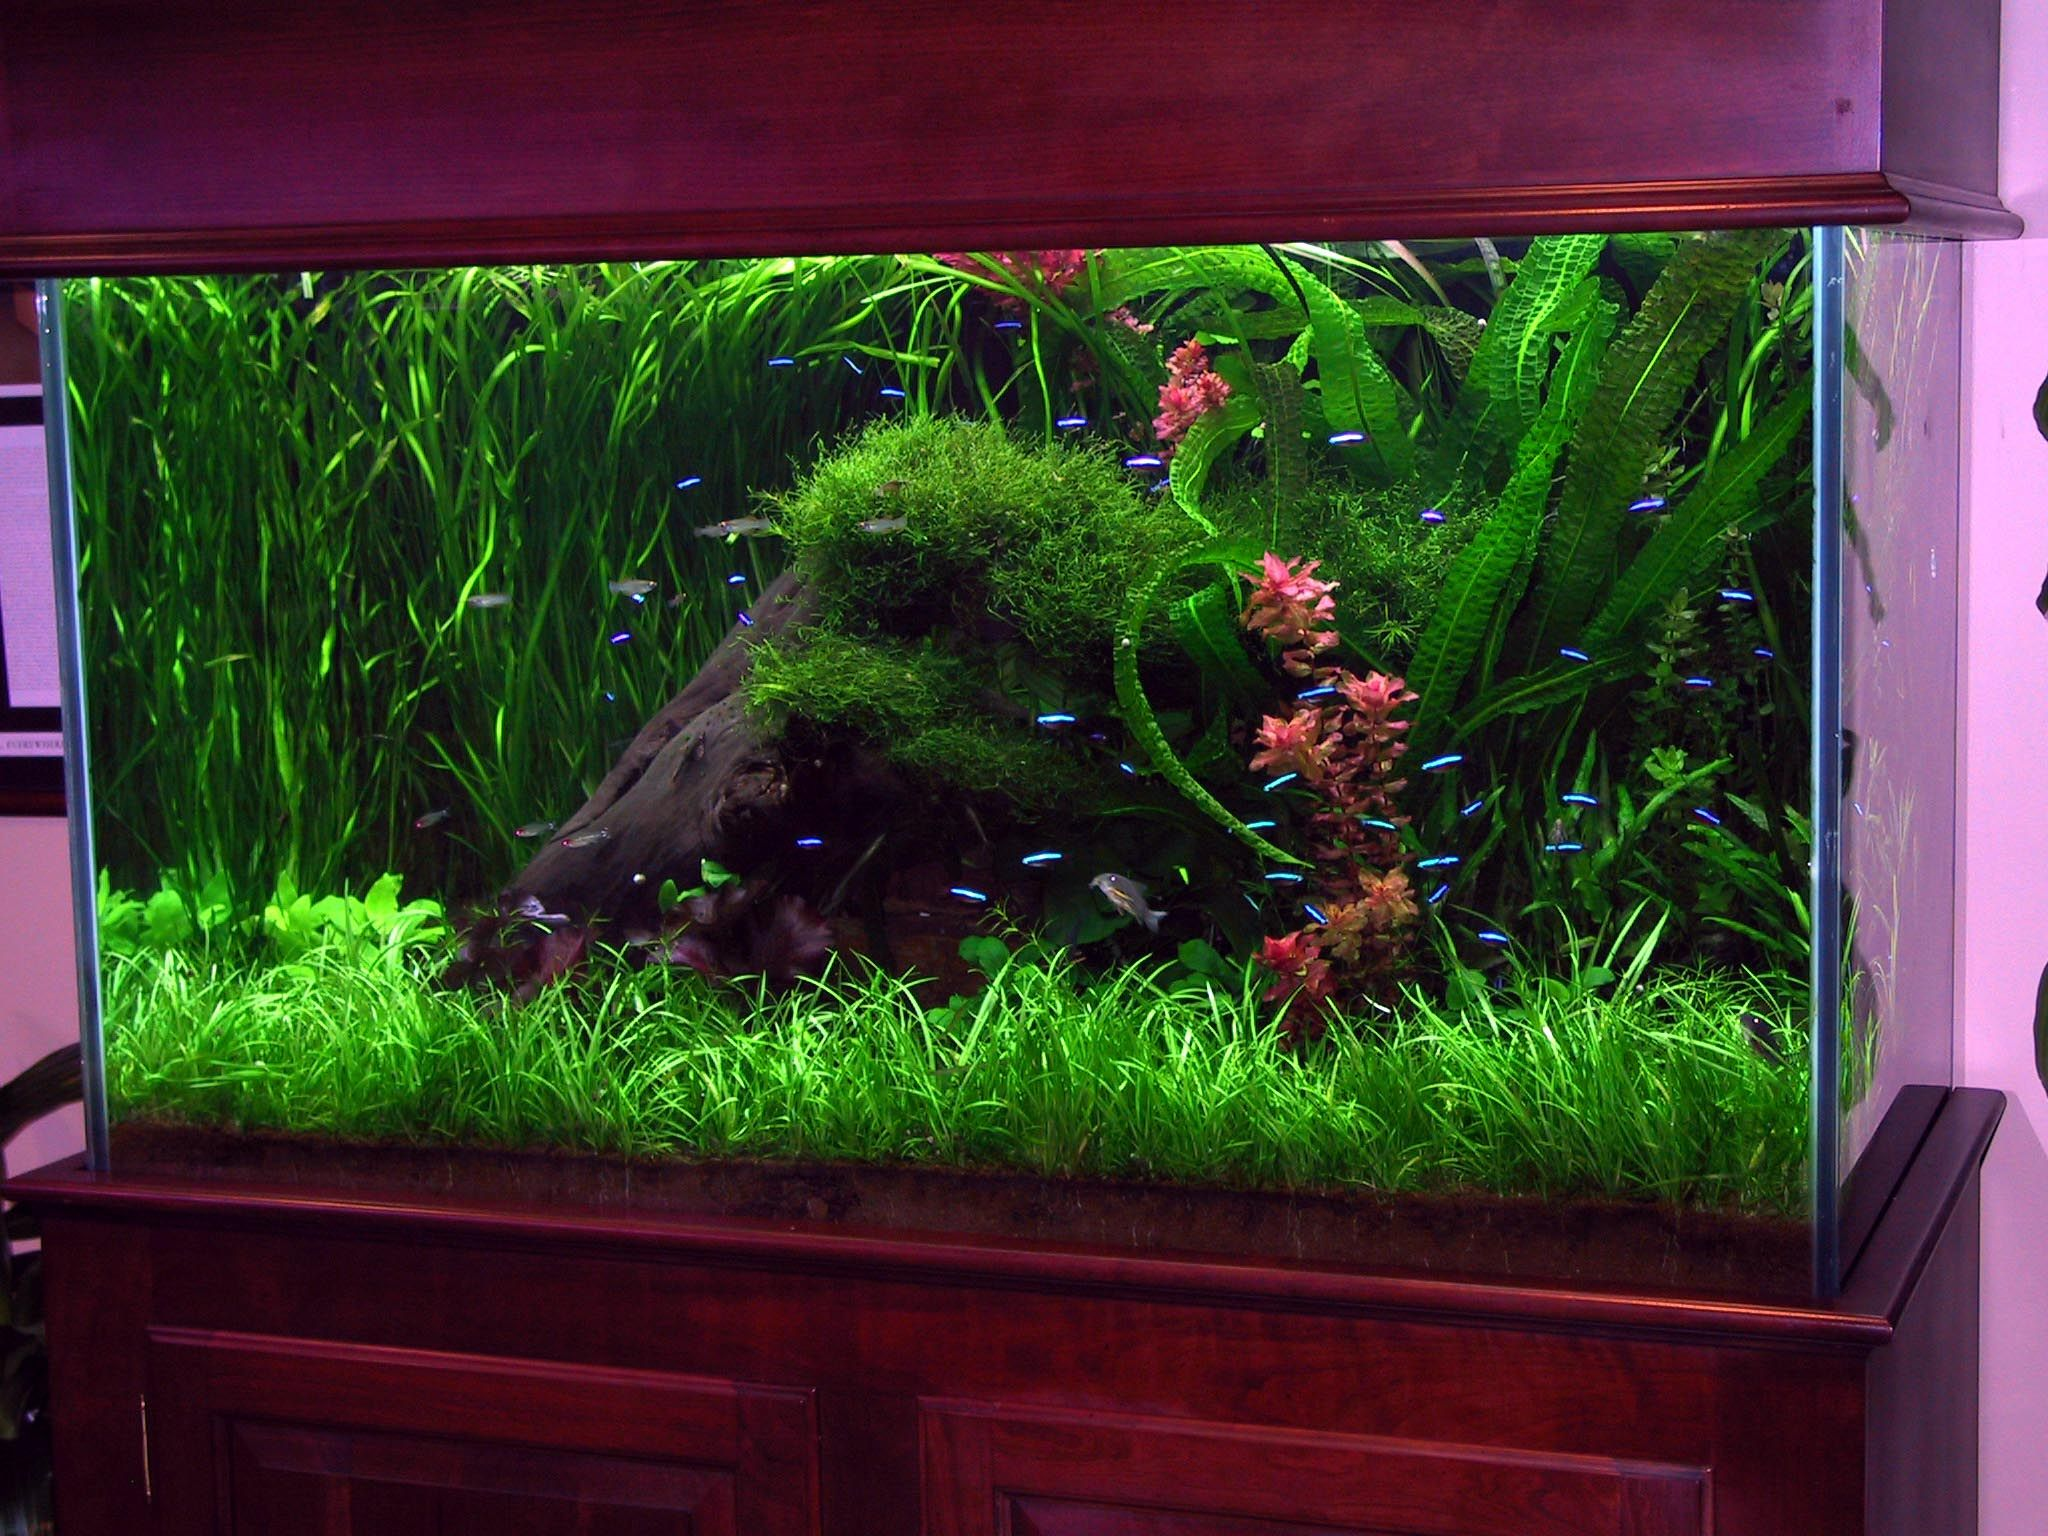 Freshwater aquarium odd fish - Transform The Way Your Home Looks Using A Fish Tank